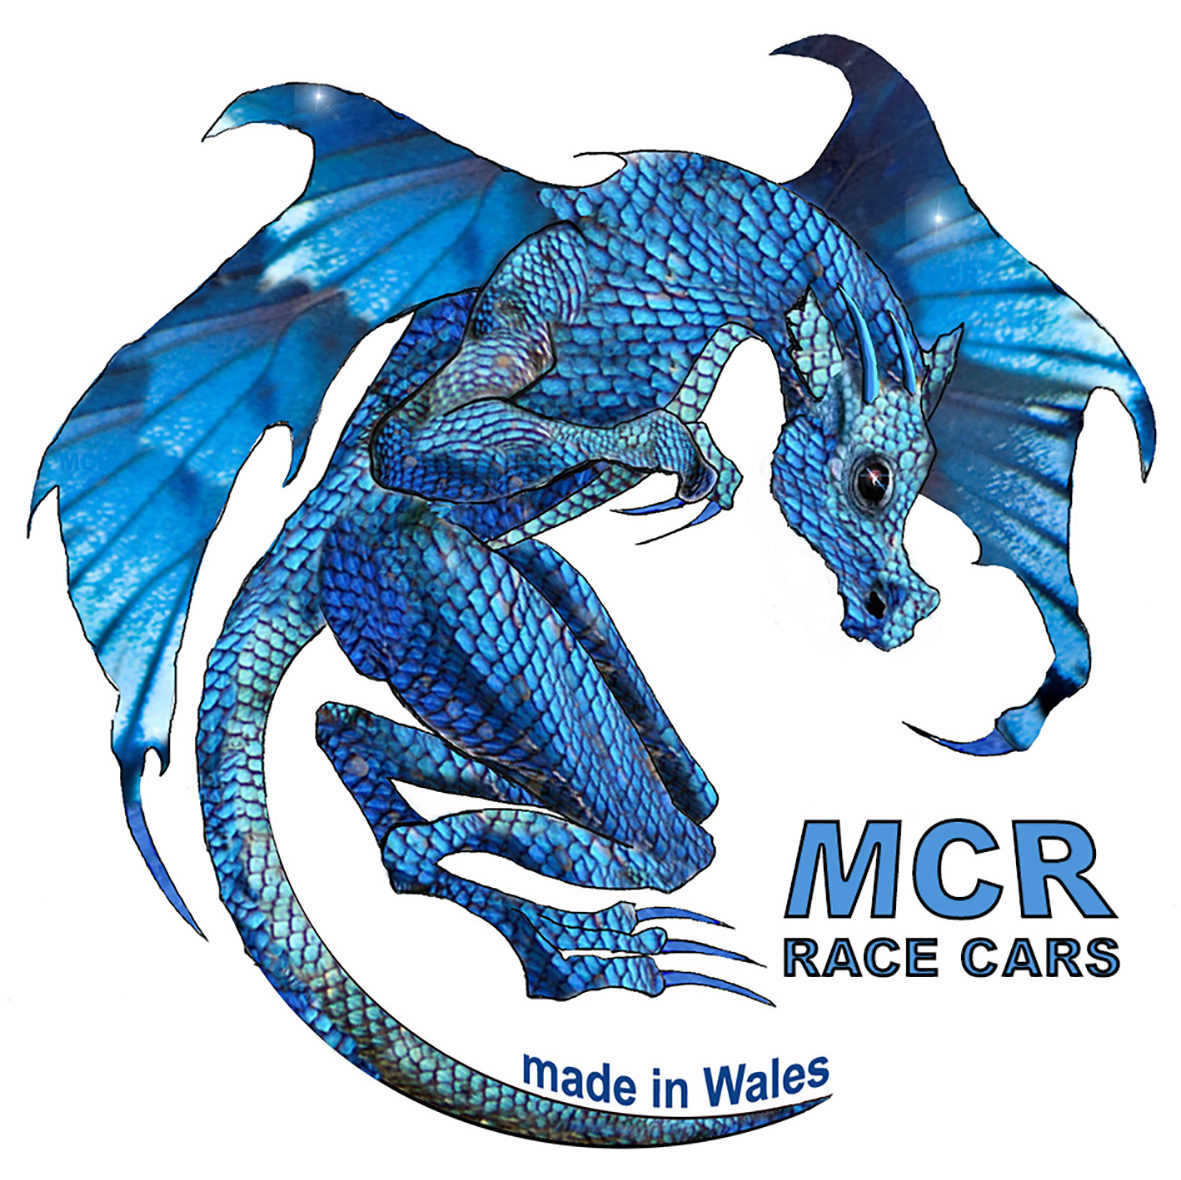 MCR Race Cars Manufacturers